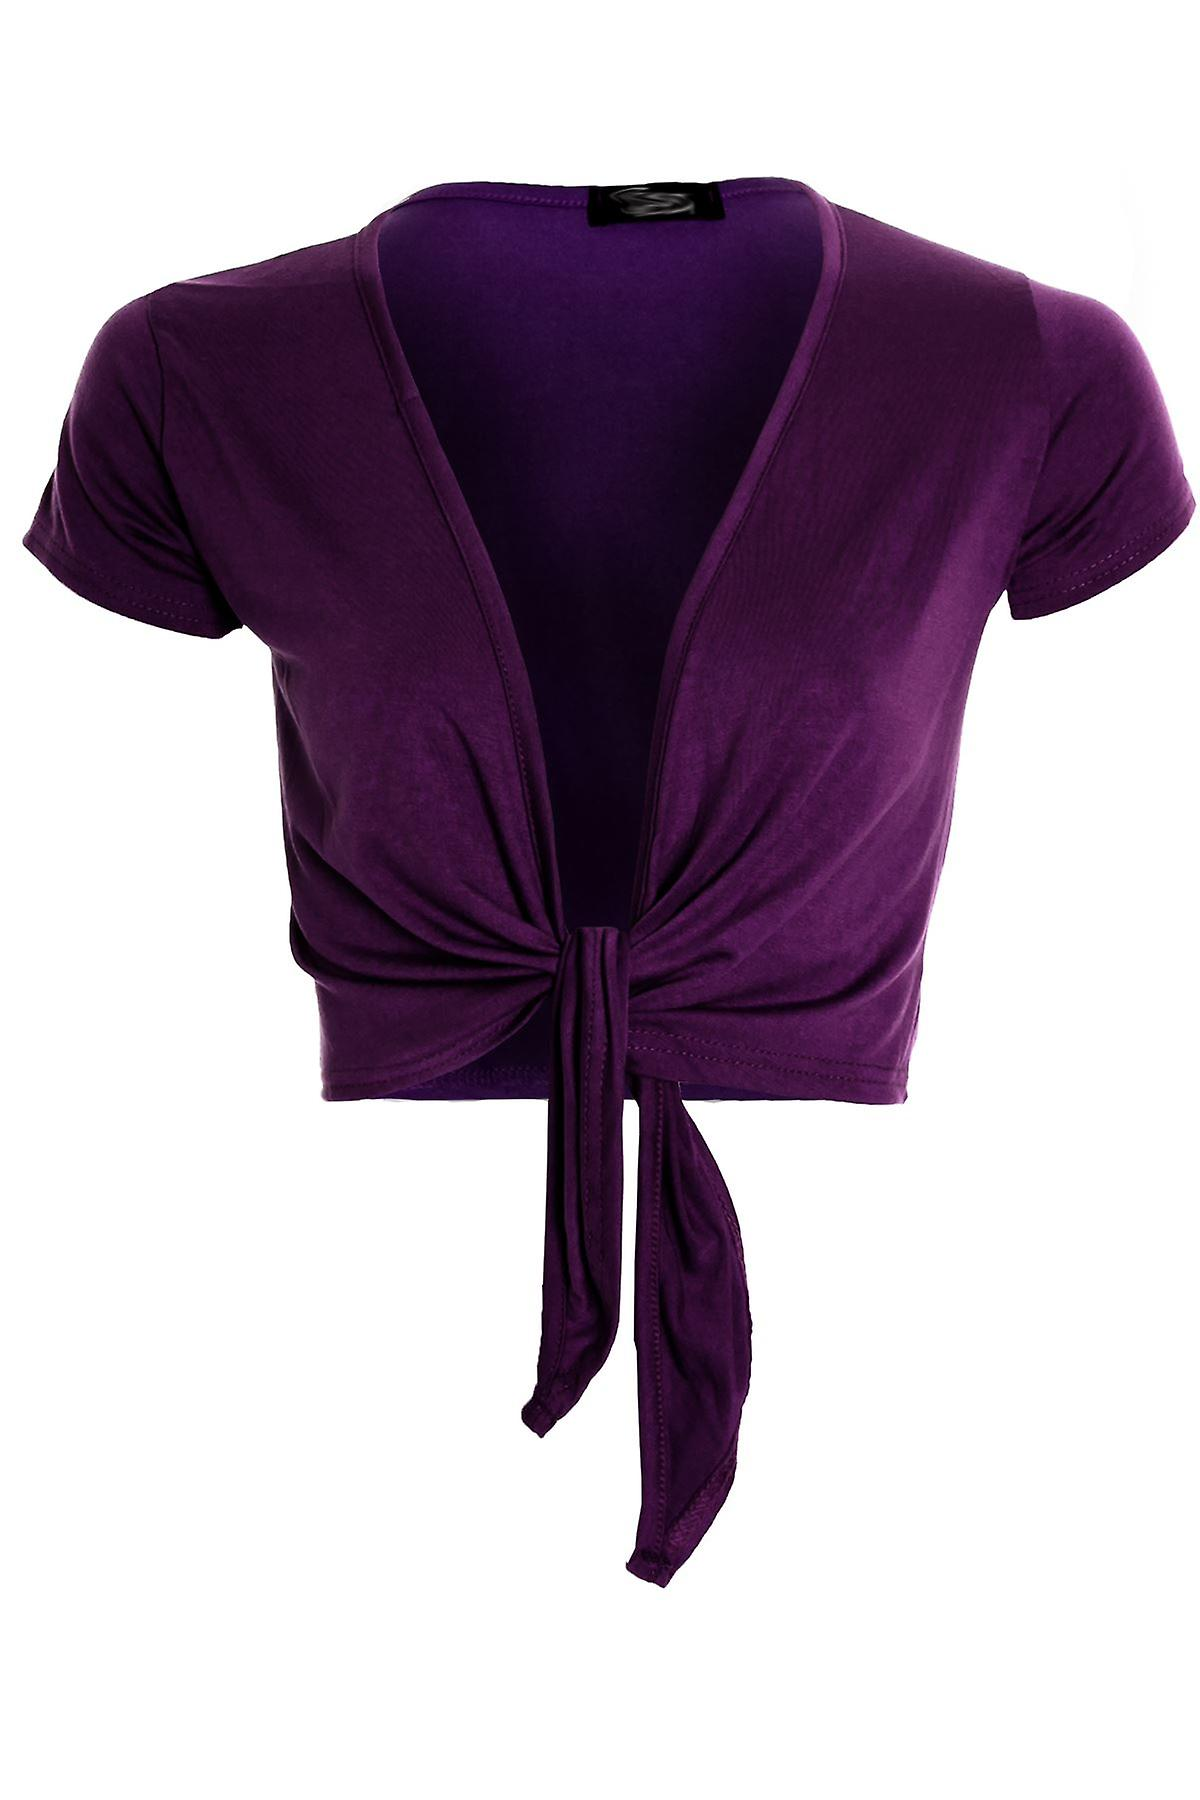 Womens Tie Up Front Cap Sleeve Bolero Colour Shrug Cardigan Wrap Ladies Top